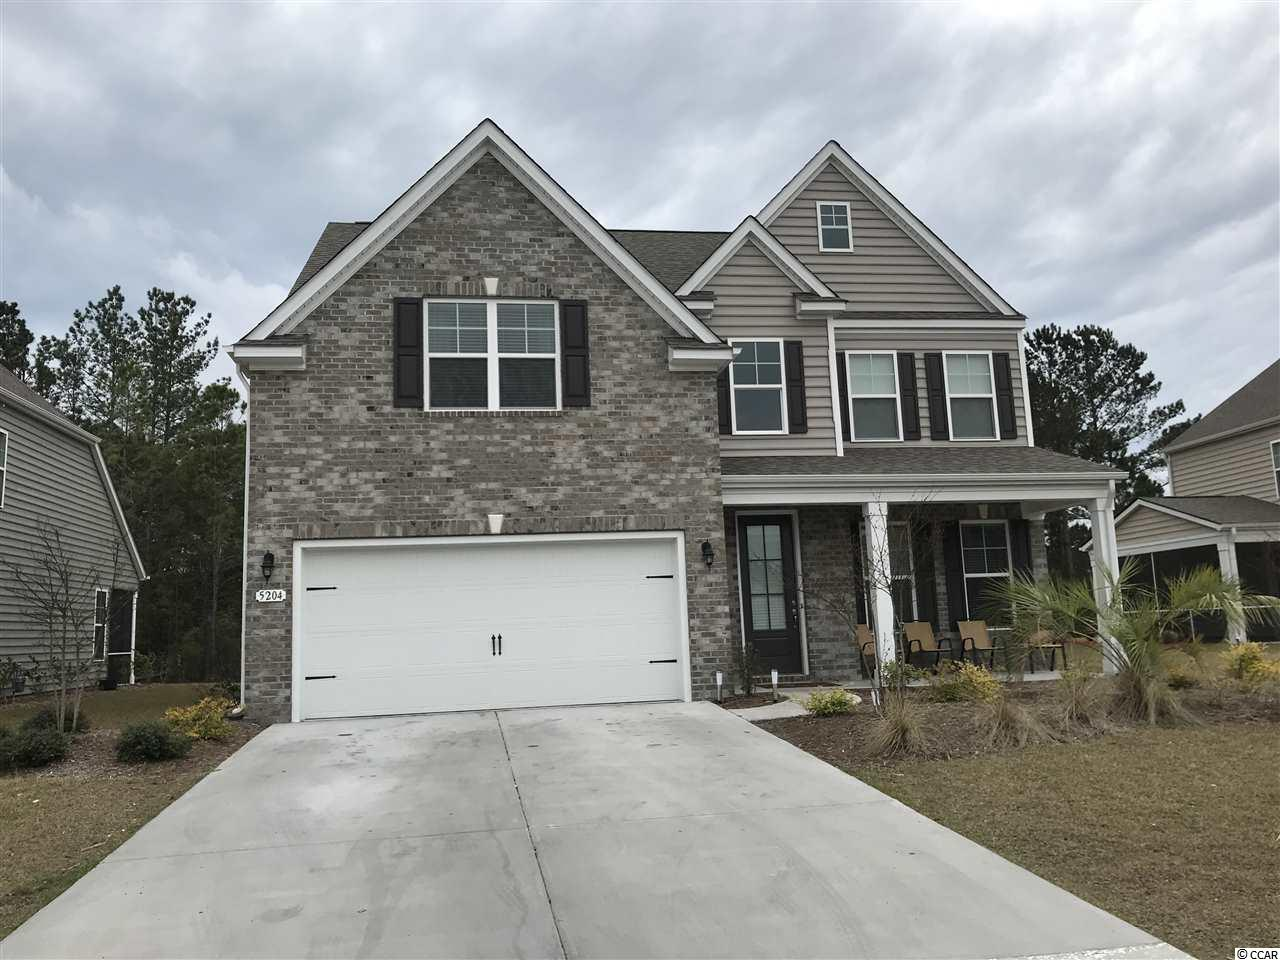 5204 Harvest Run Way, Myrtle Beach, SC 29579